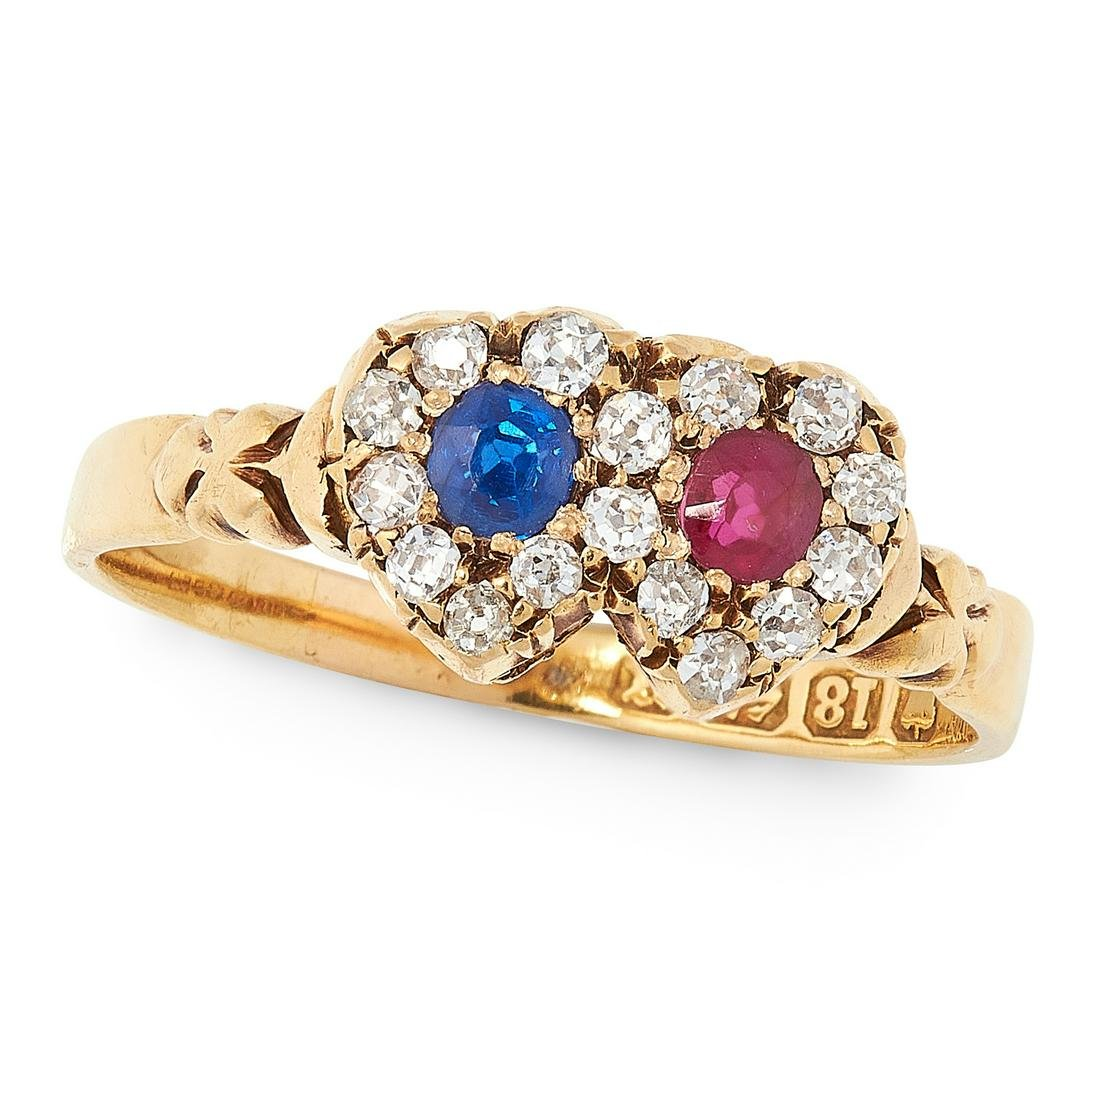 AN ANTIQUE VICTORIAN RUBY, SAPPHIRE AND DIAMOND